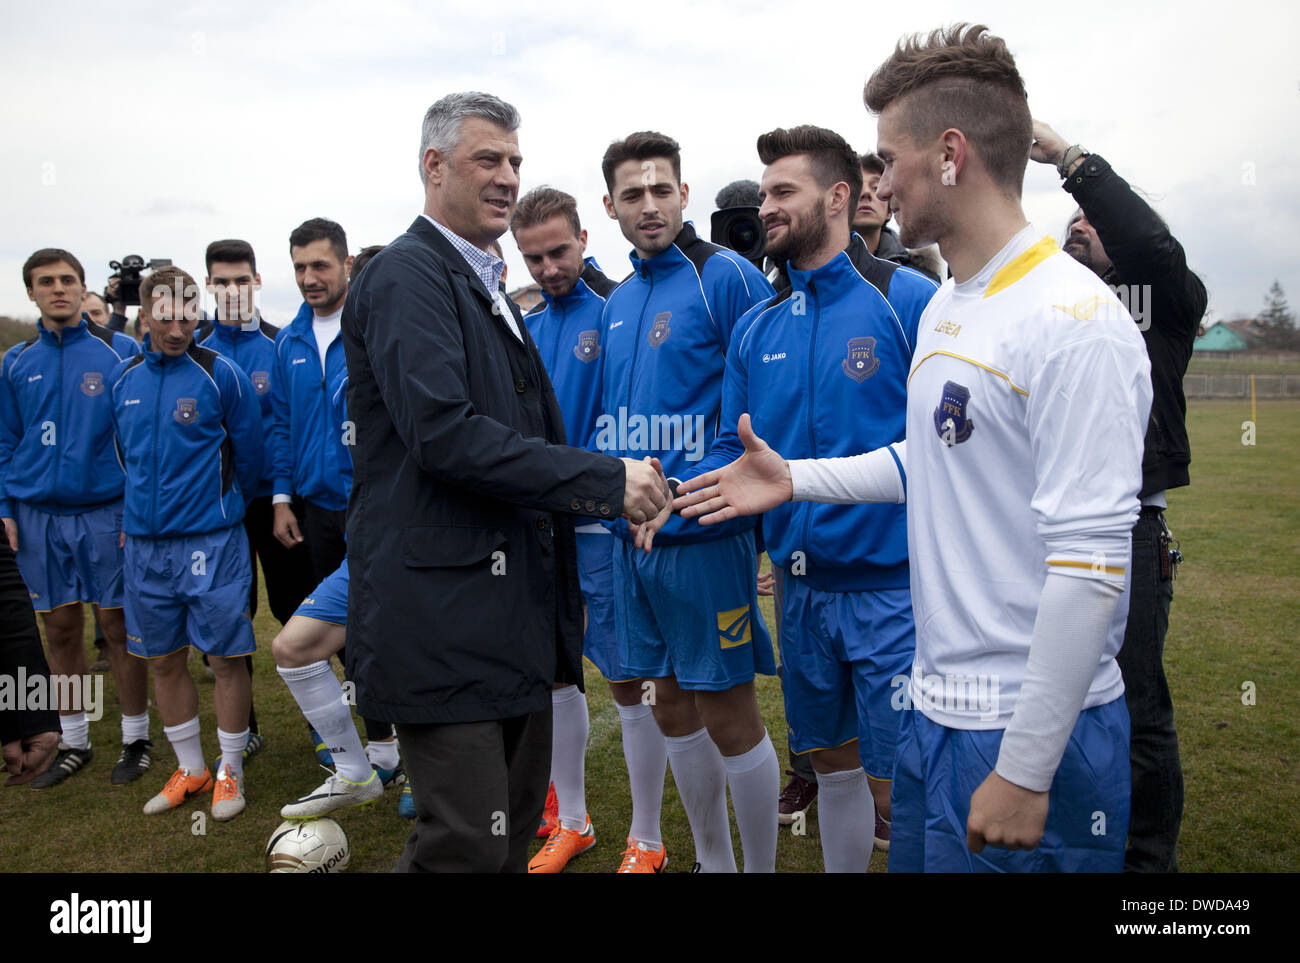 Pristina, Kosovo. 4th Mar, 2014. Kosovo's Prime Minister Hashim Thaci congratulates members of the Kosovo National Team before practice at the KeK stadium on the Kastriot/Obilic district of Pristina. The will play their first FIFA sanctioned match, a friendly game against Haiti, on Wednesday March 5. PHOTO BY JODI HILTON/NURPHOTO © Jodi Hilton/NurPhoto/ZUMAPRESS.com/Alamy Live News - Stock Image